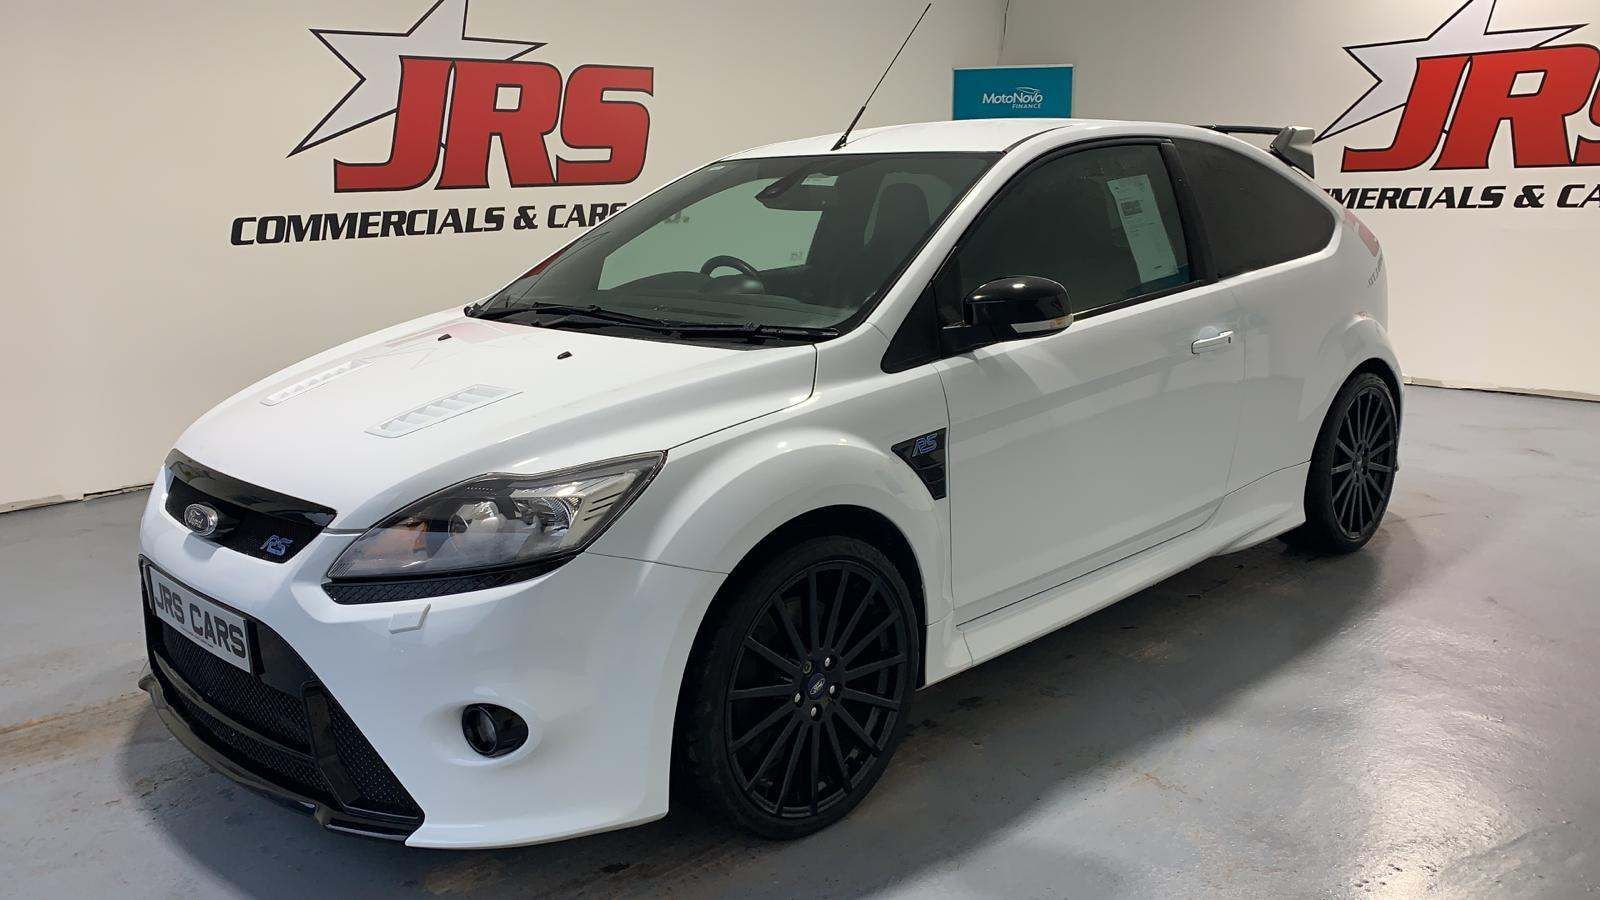 2010 FORD Focus 2.5 RS Petrol Manual *Lux Pack 2* – J R S Commercials And Cars Dungannon full